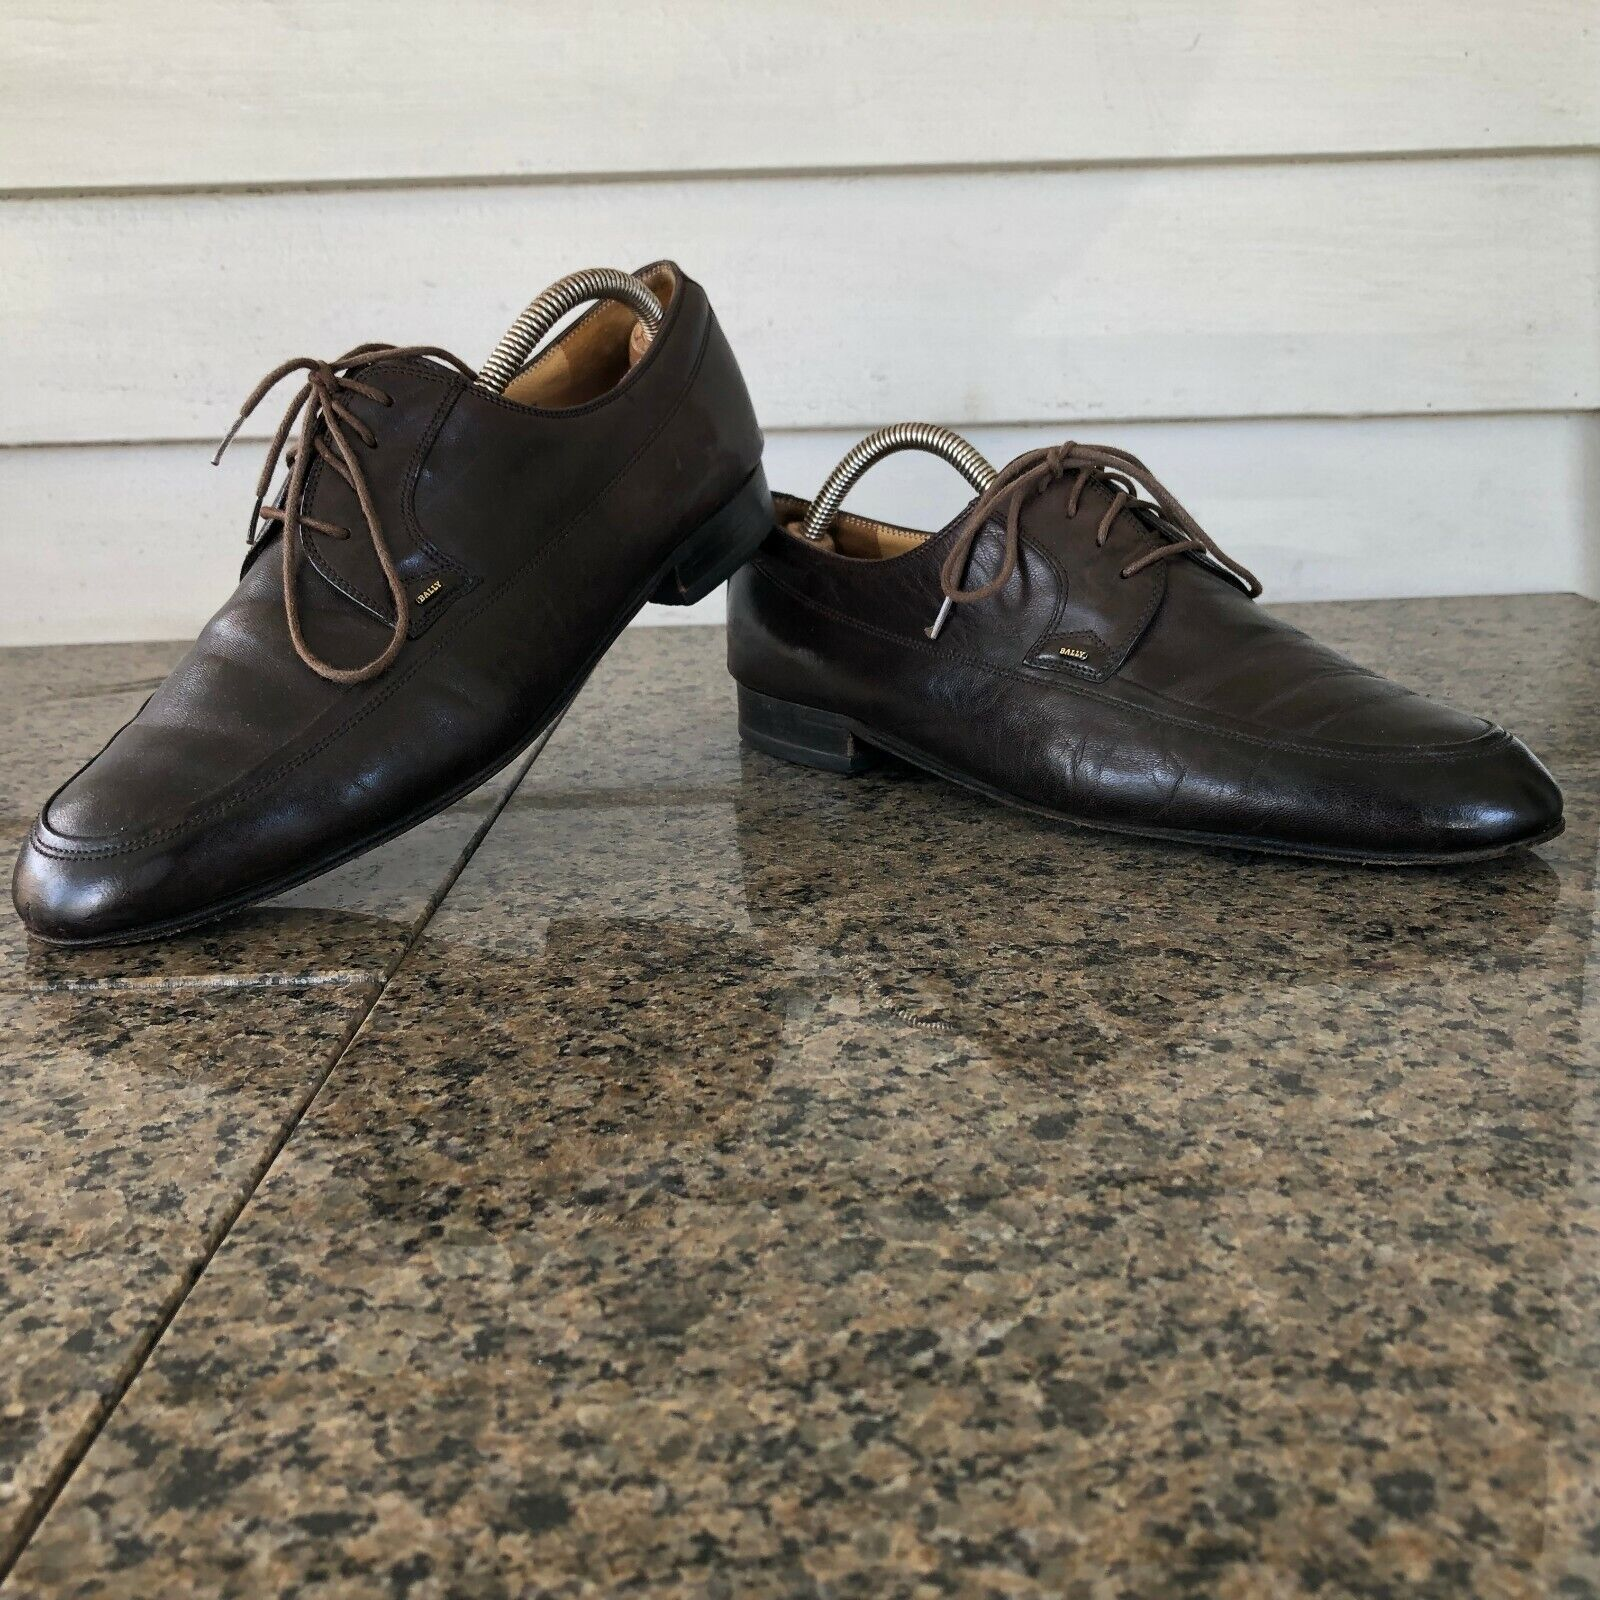 Bally Sz 9 E Chocolate Brown Leather Oxford Men's shoes